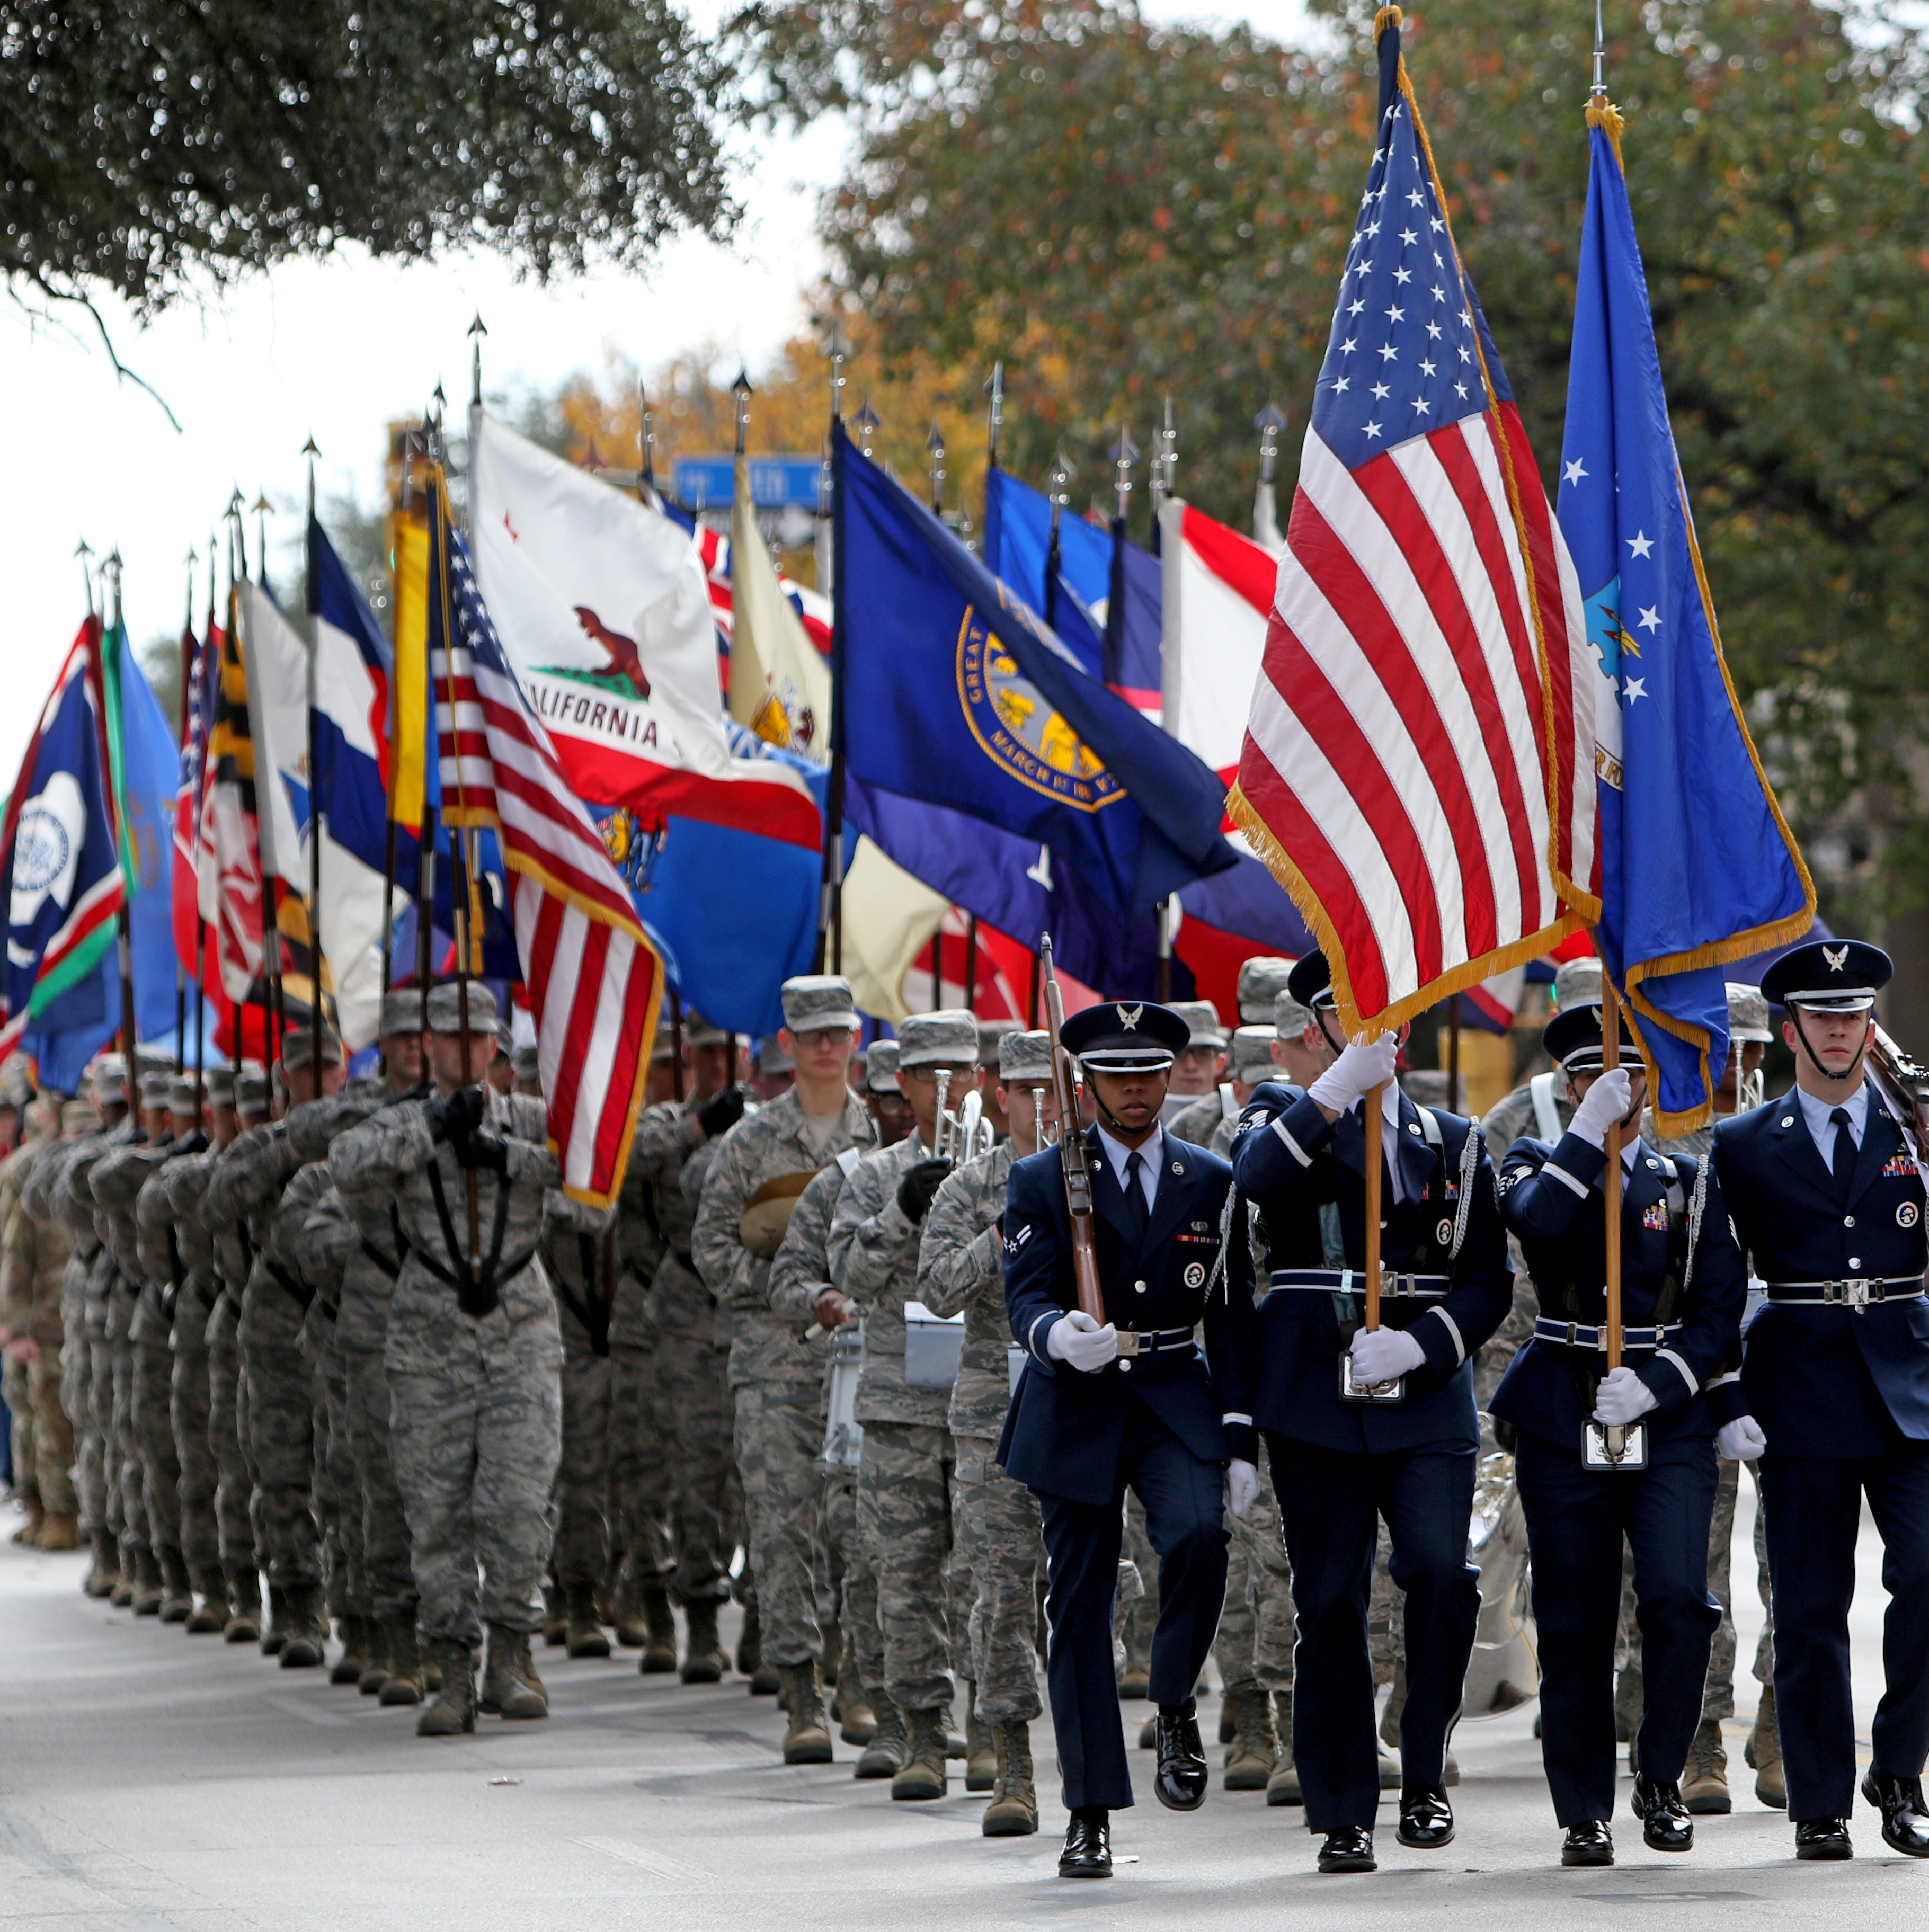 Veterans Day Parade honors past and present members of the military